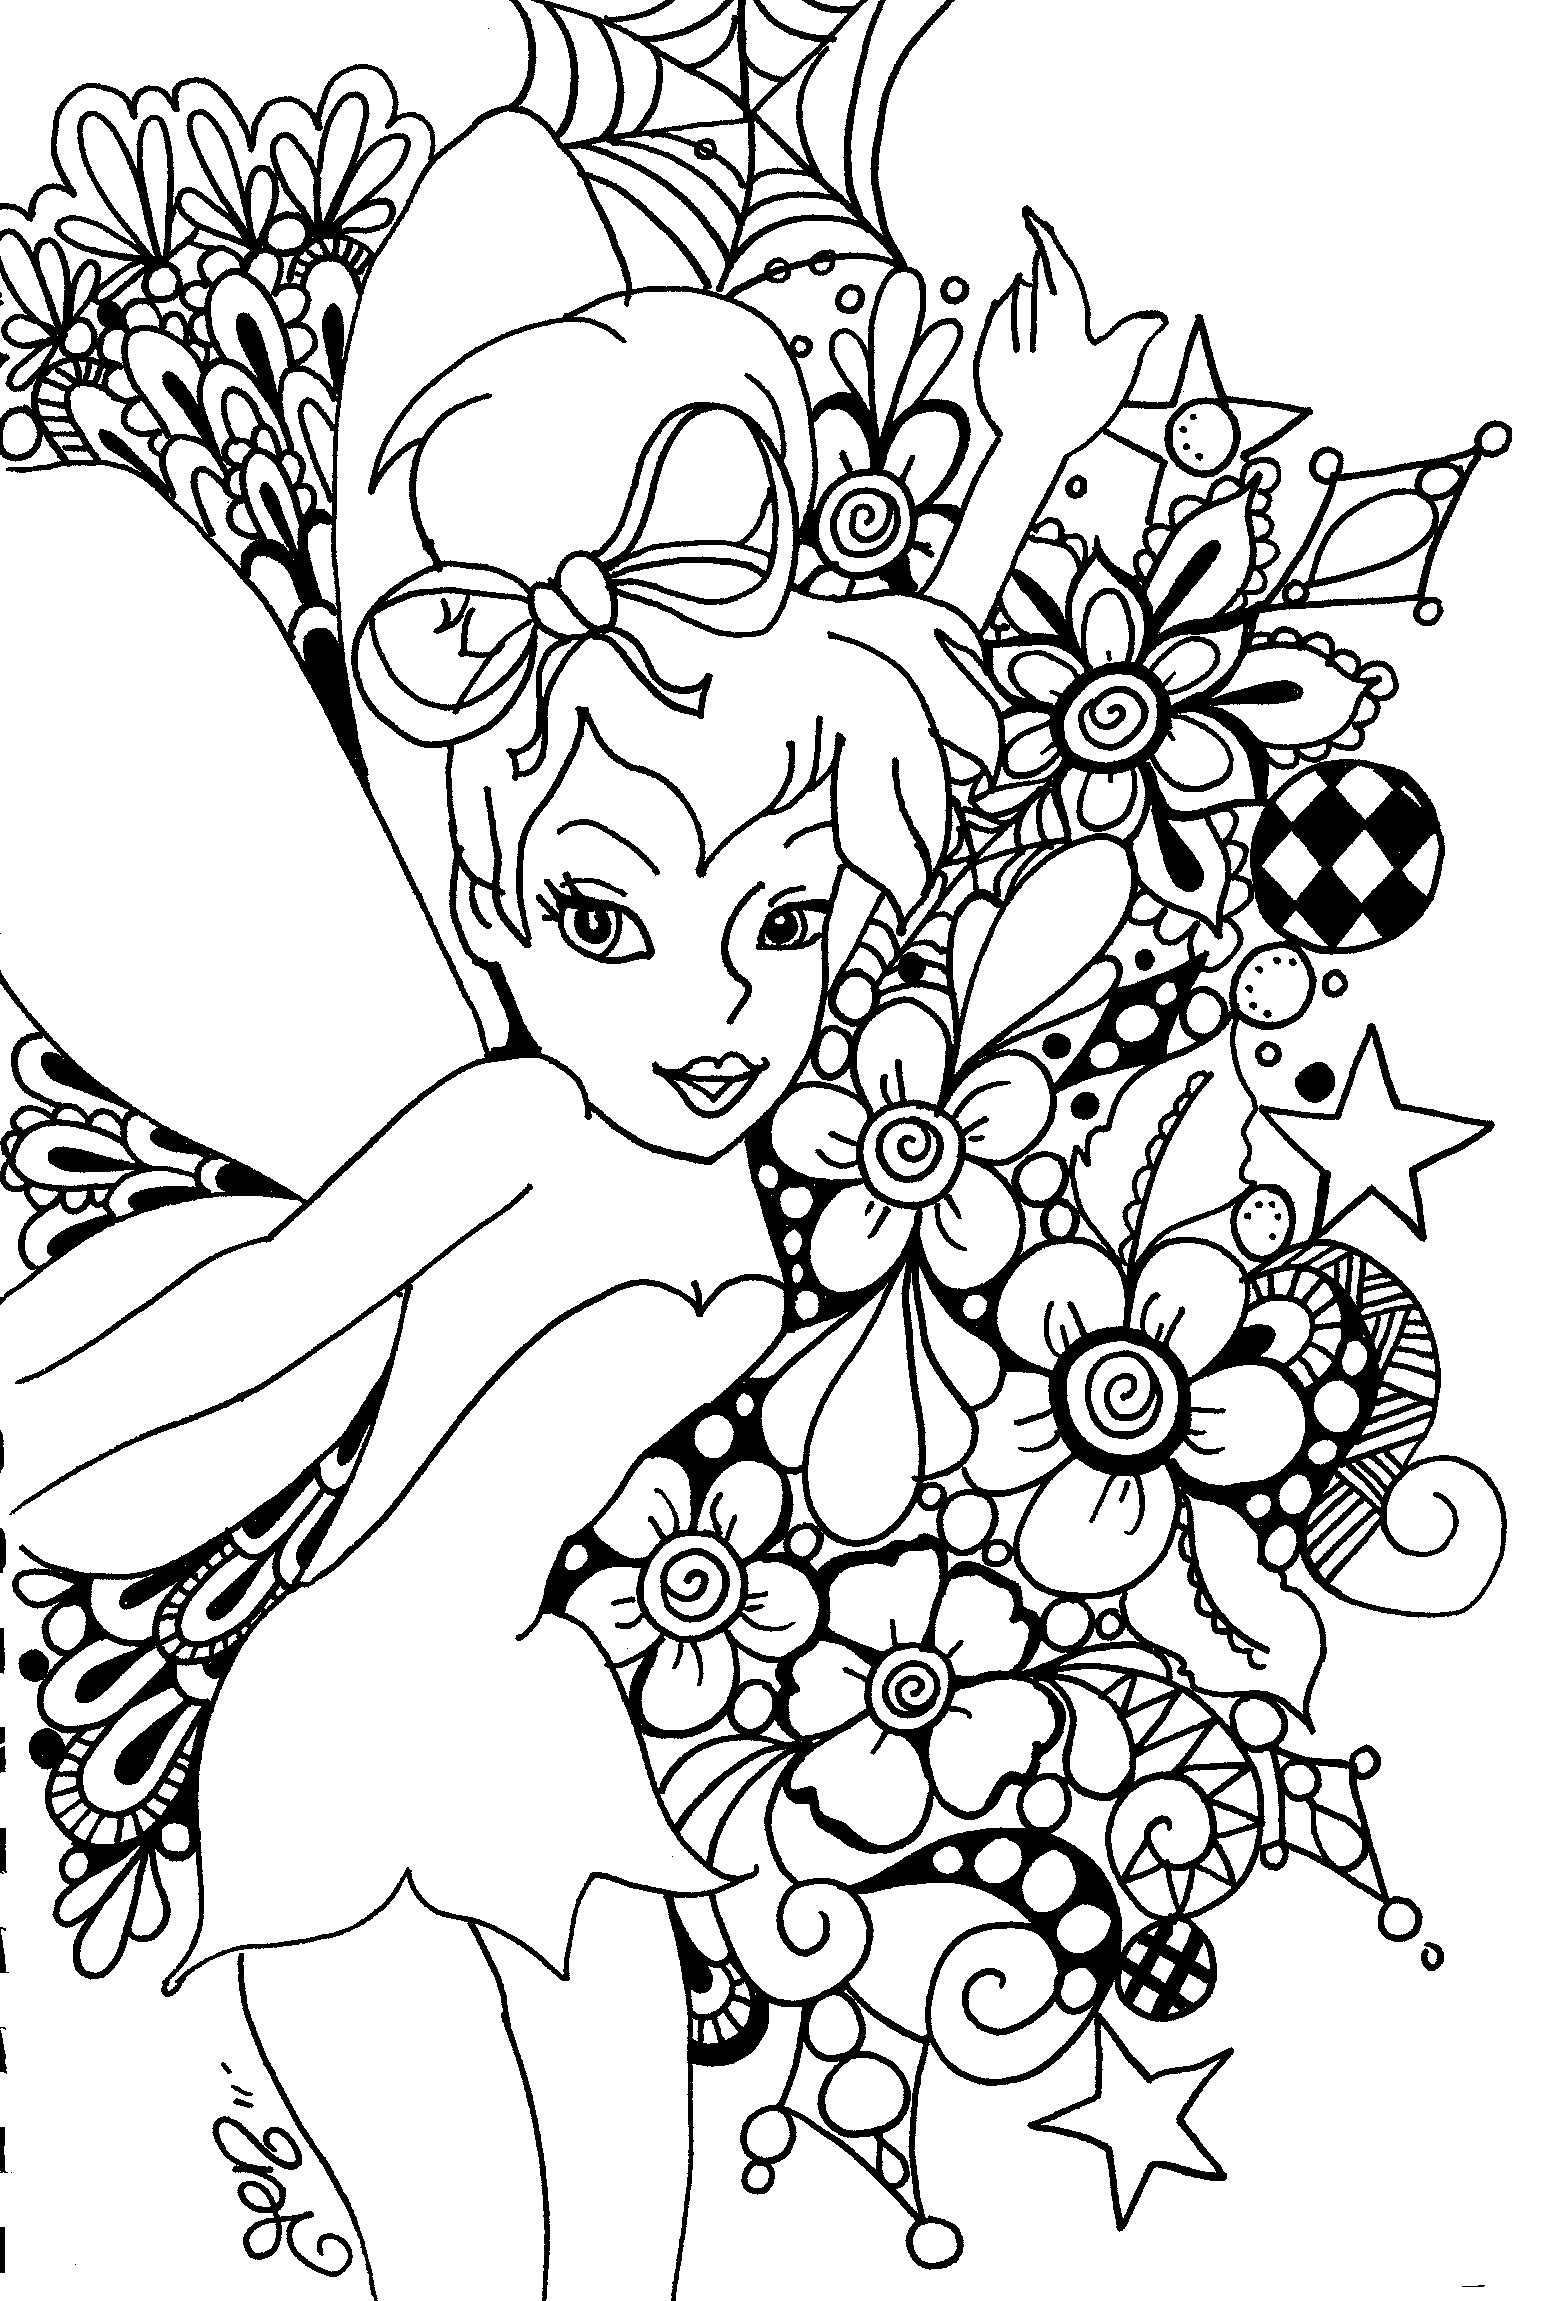 Free Coloring Pages For Adults  Free Printable Tinkerbell Coloring Pages For Kids